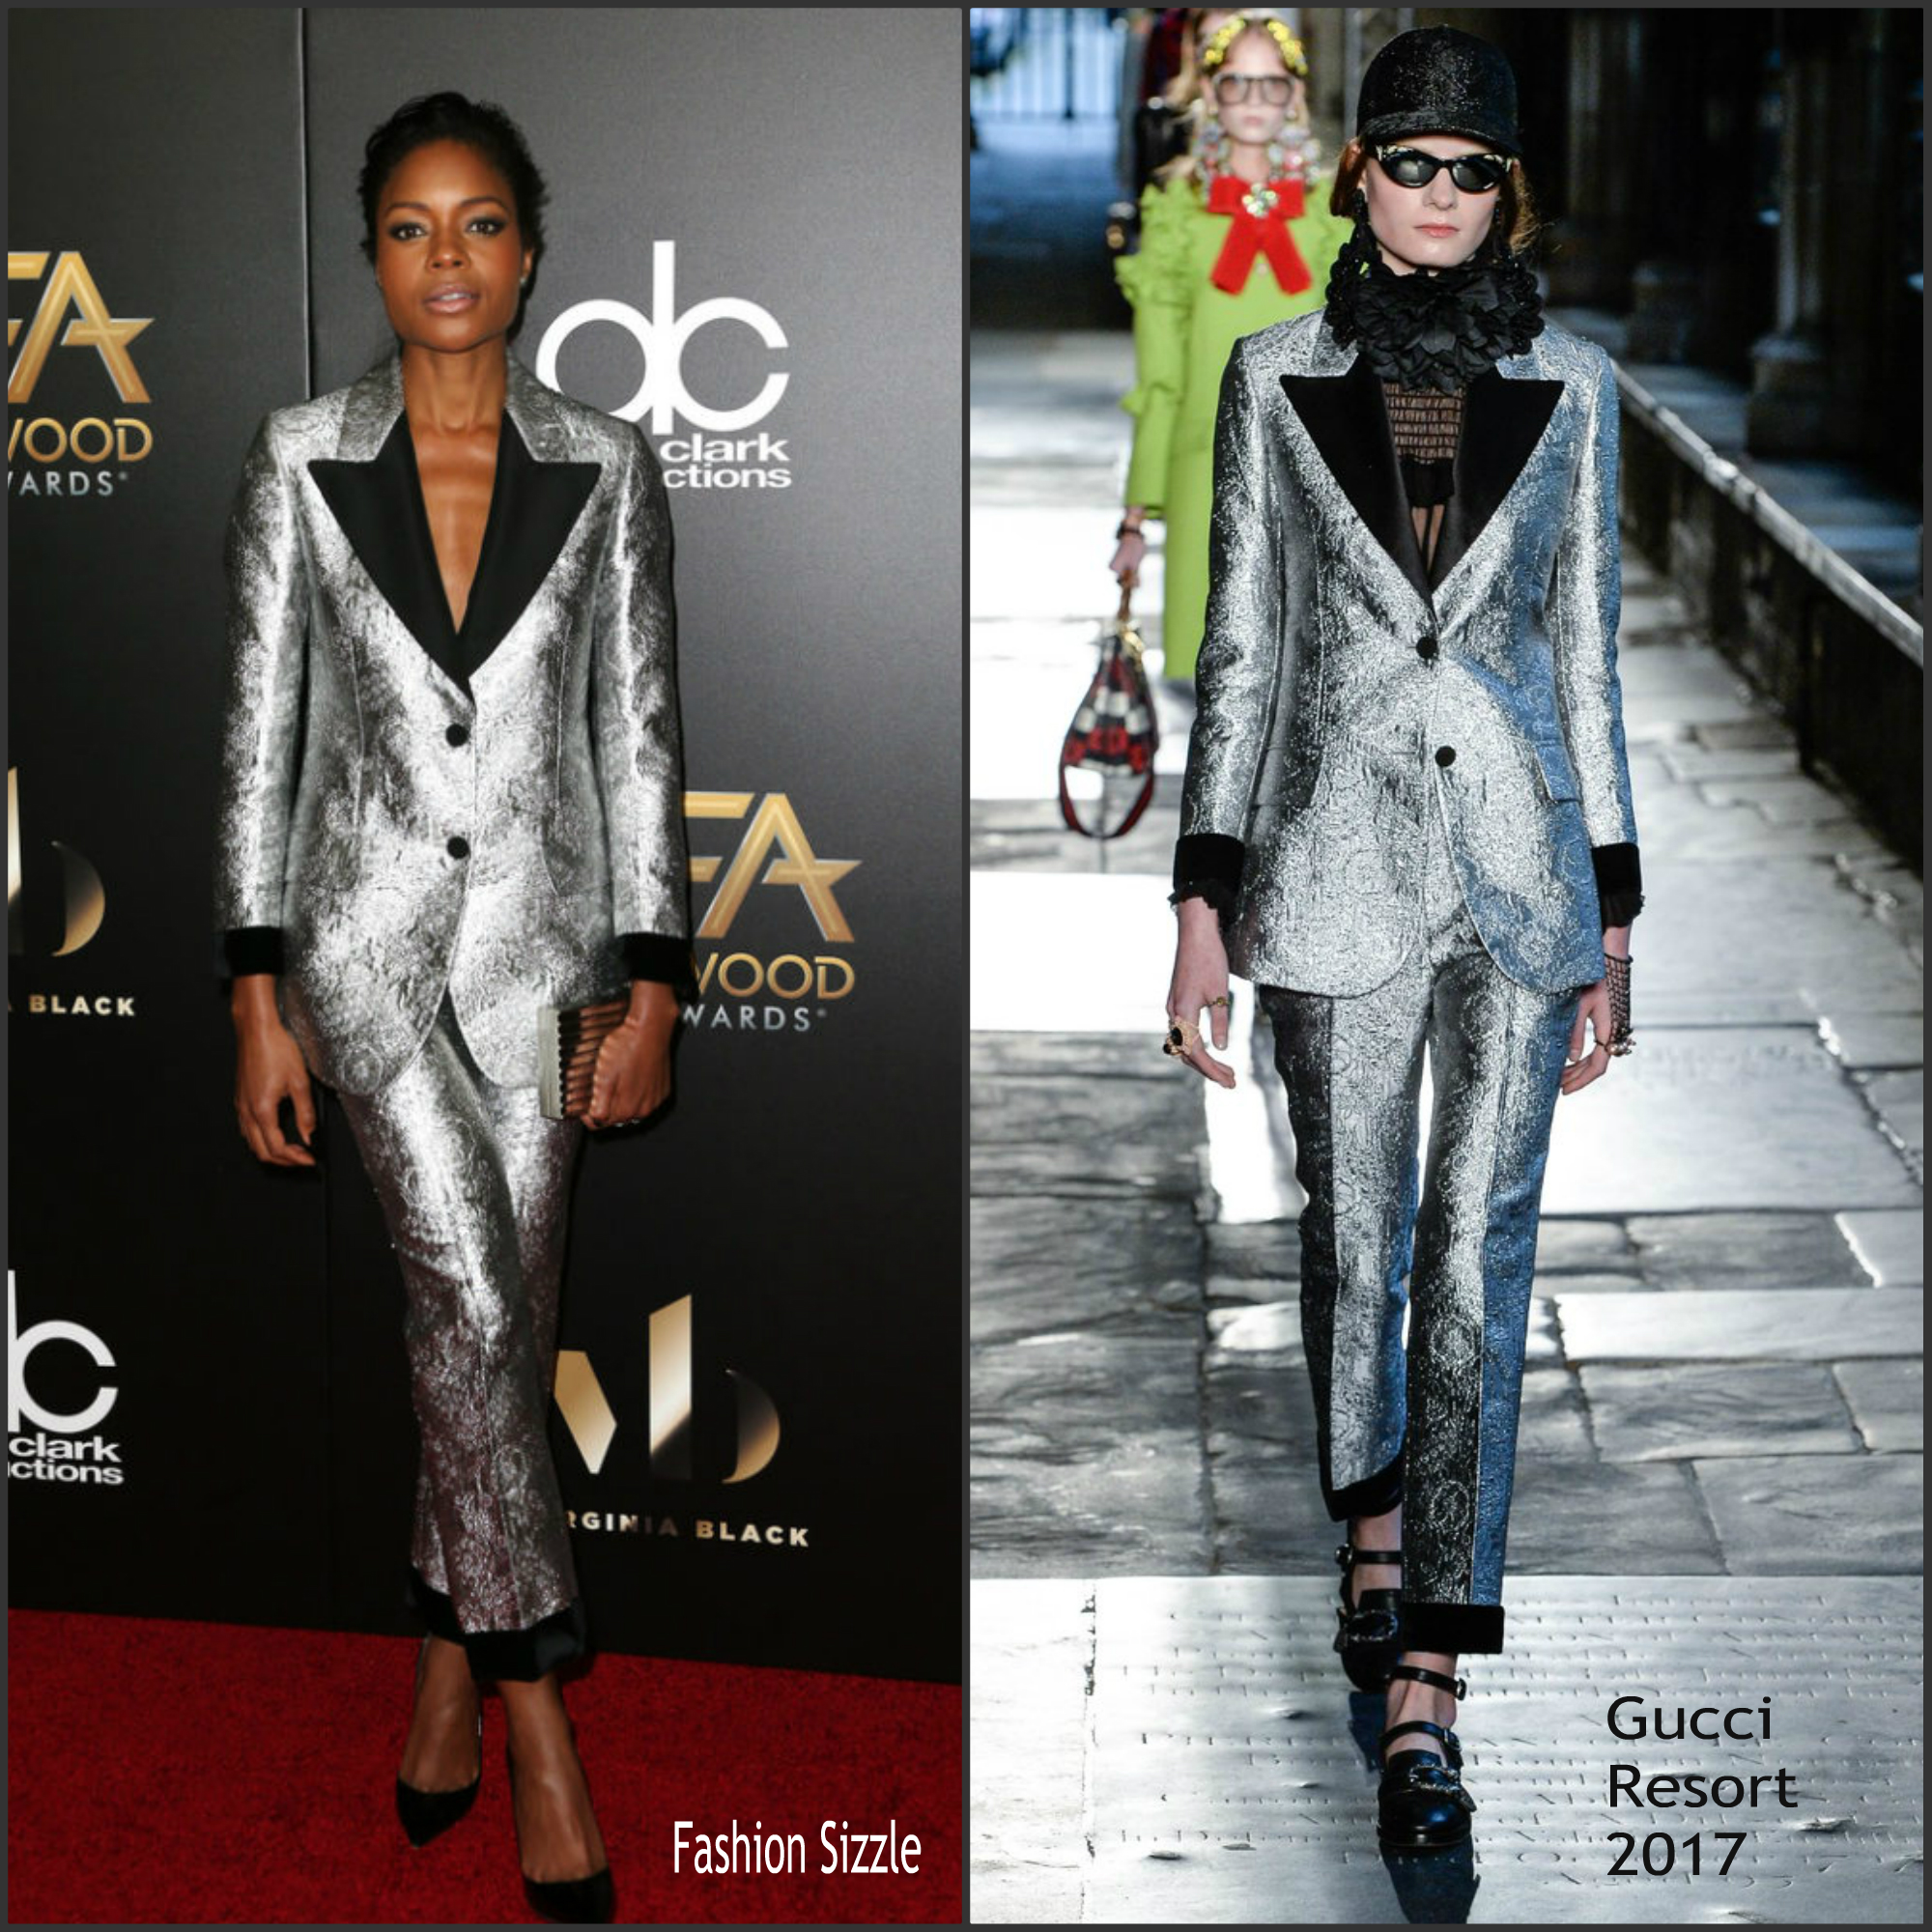 naomie-harris-in-gucci-at-hollywood-film-awards